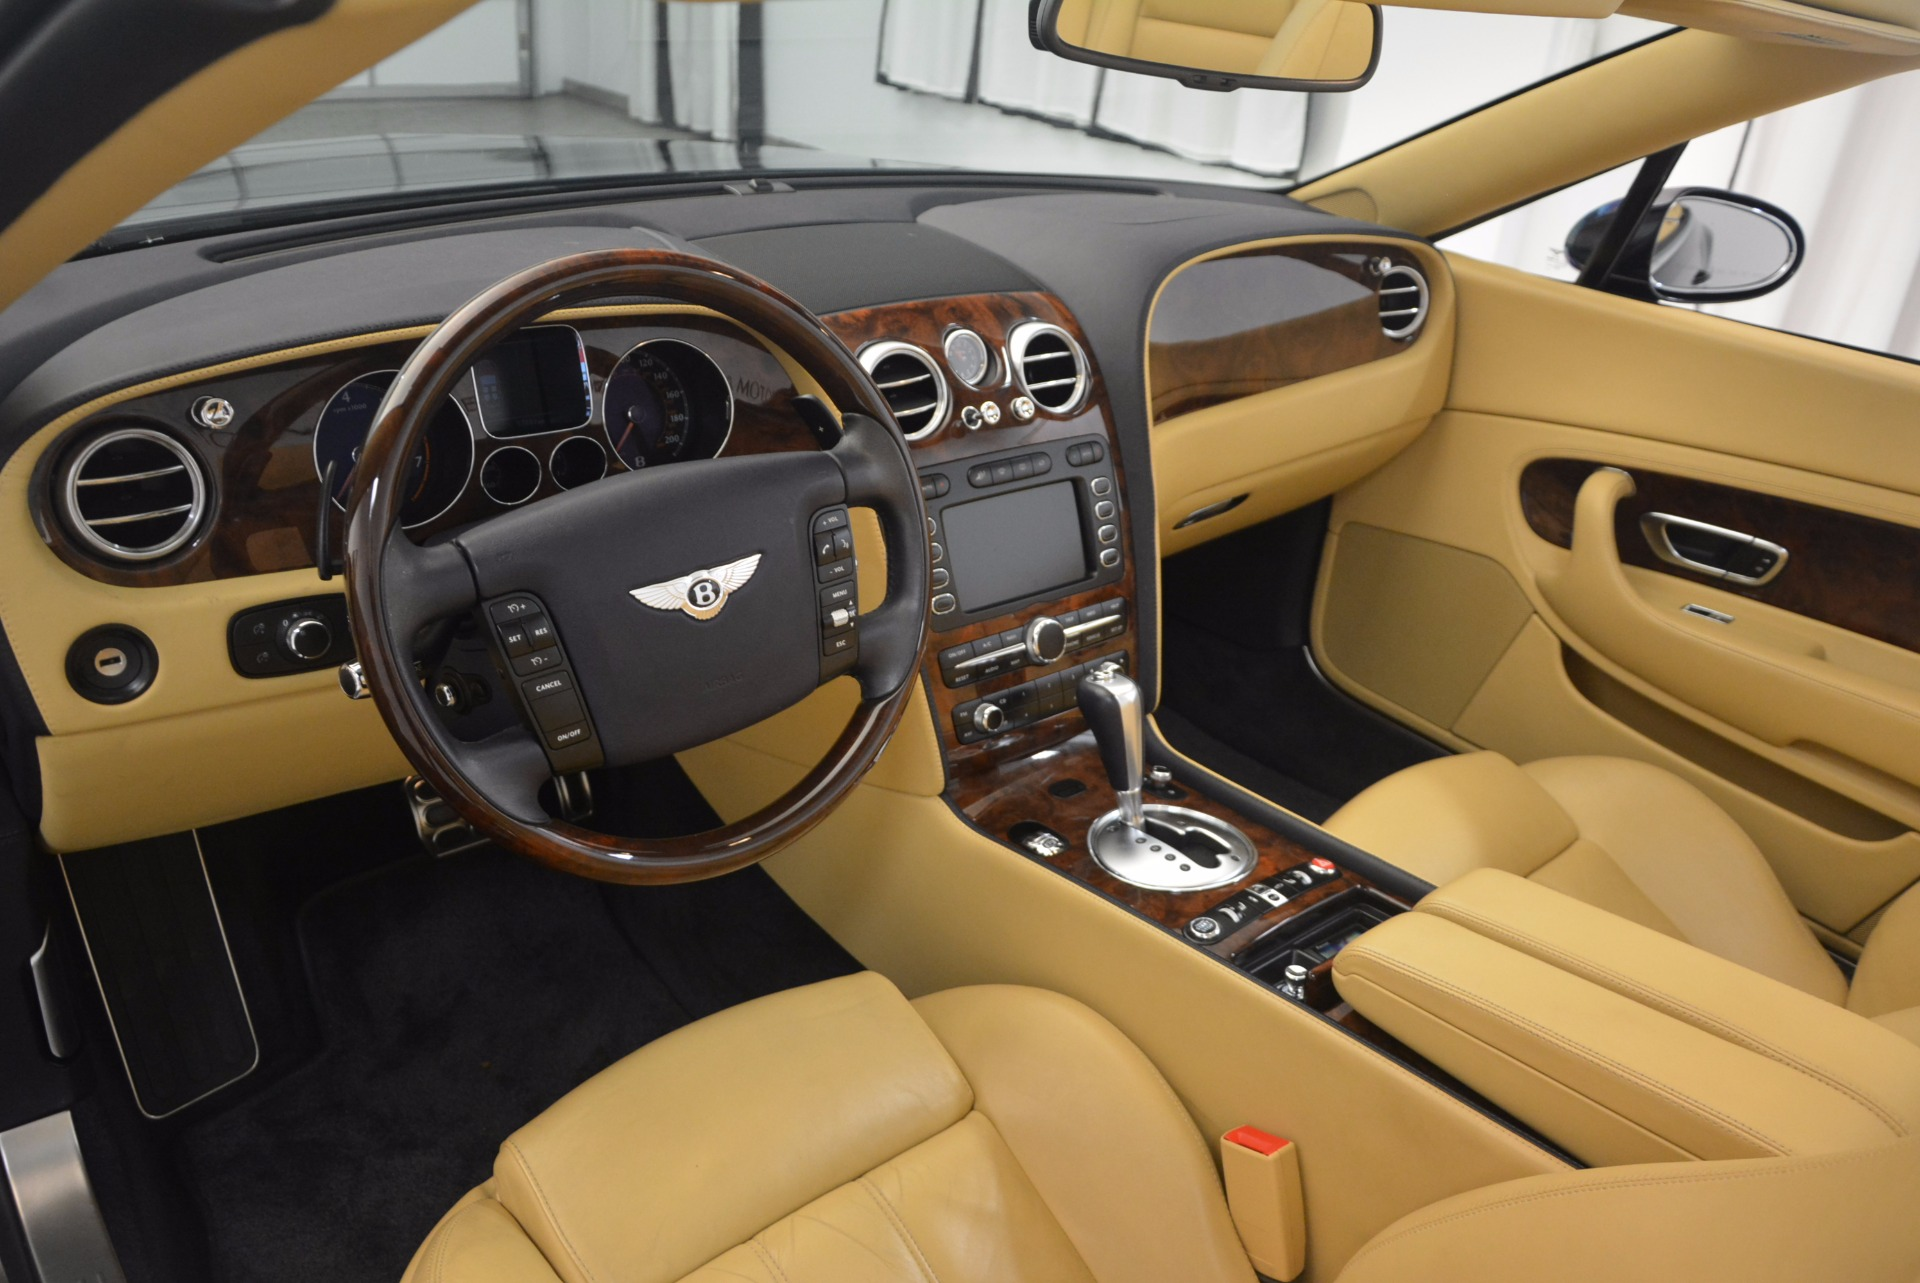 Used 2007 Bentley Continental GTC  For Sale In Westport, CT 1186_p32